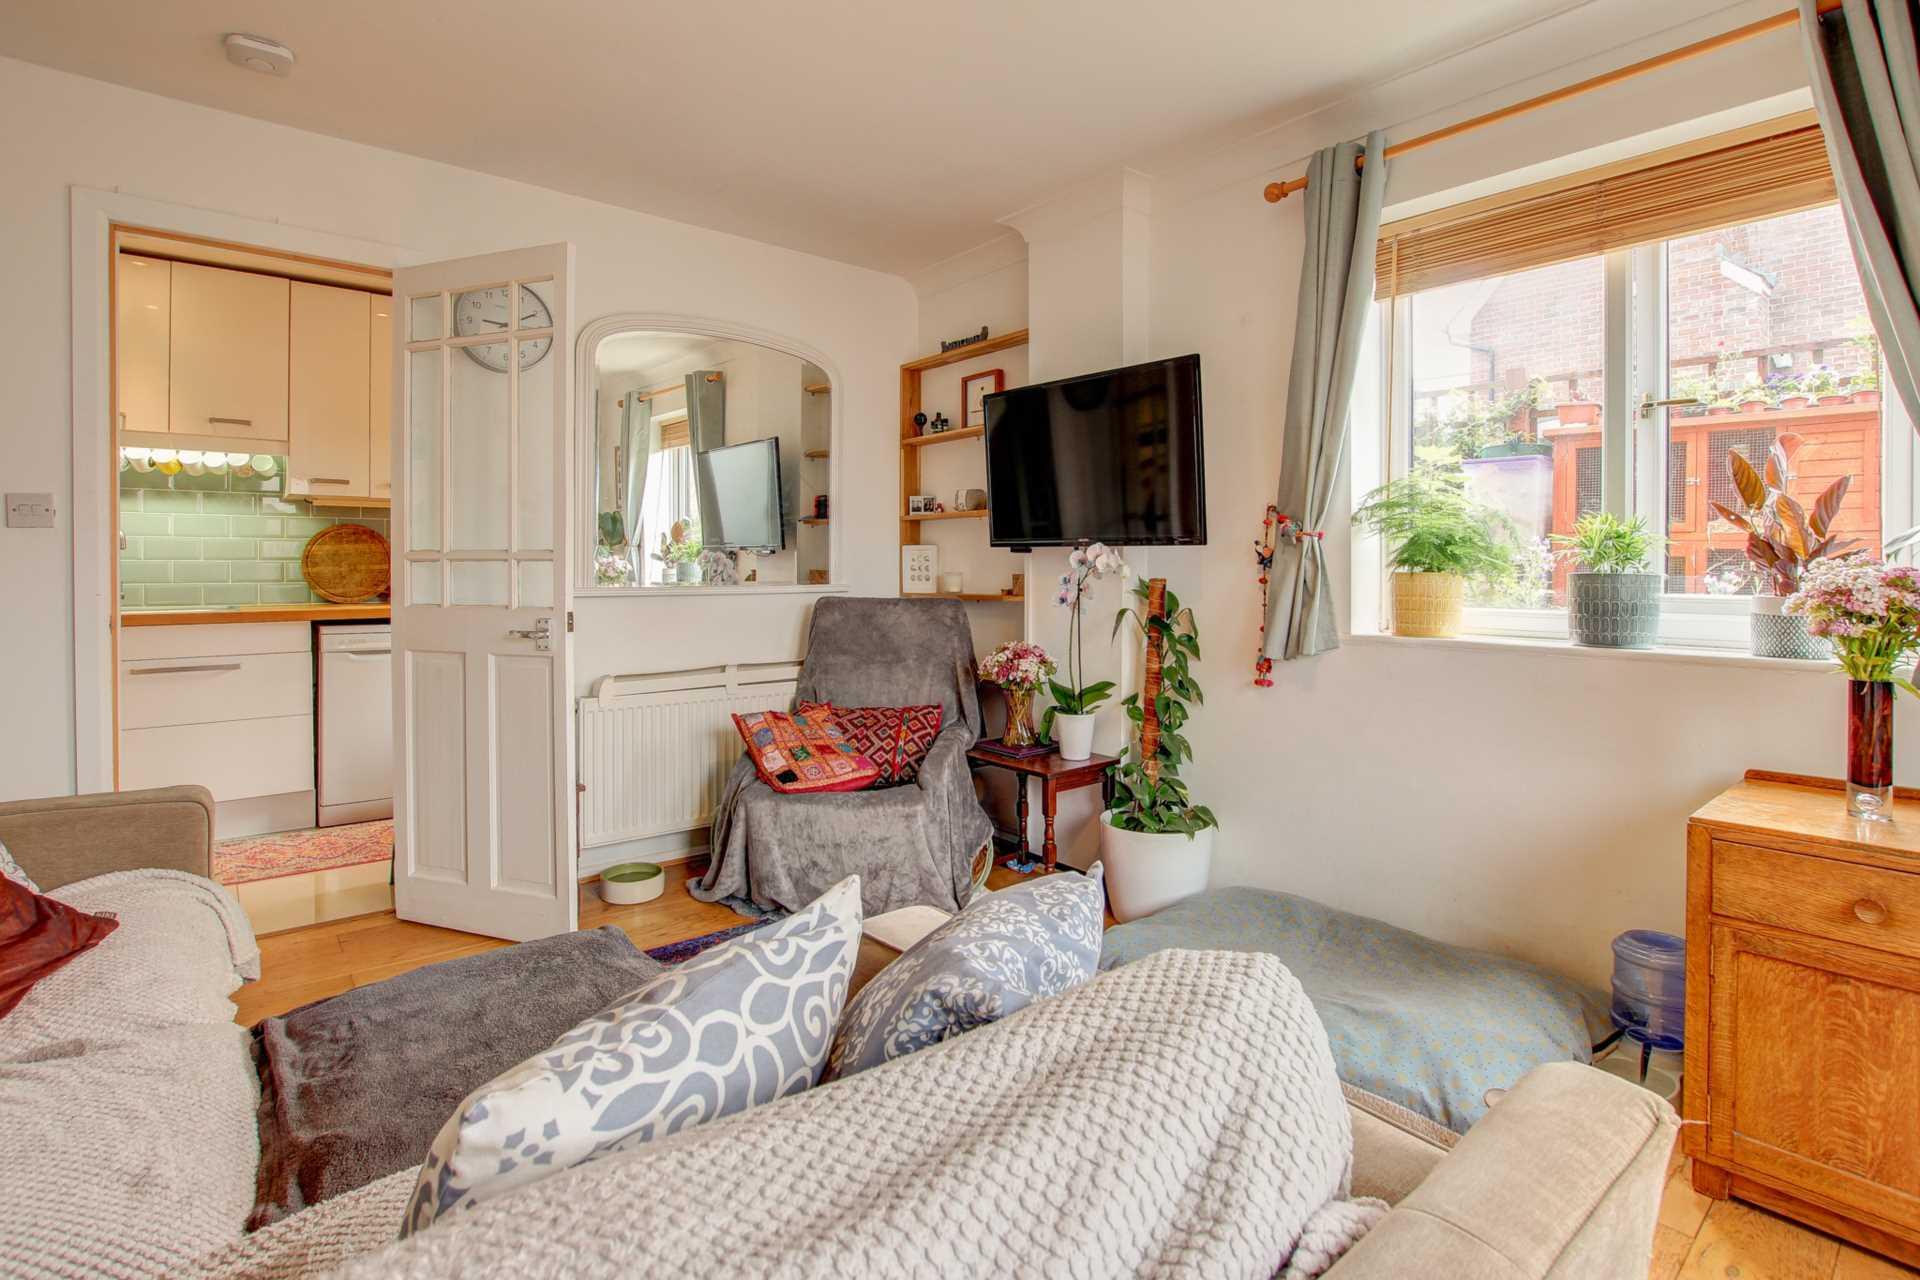 2 bed end of terrace house for sale in The Mews, Shorts Lane, Blandford Forum, Blandford Forum 10